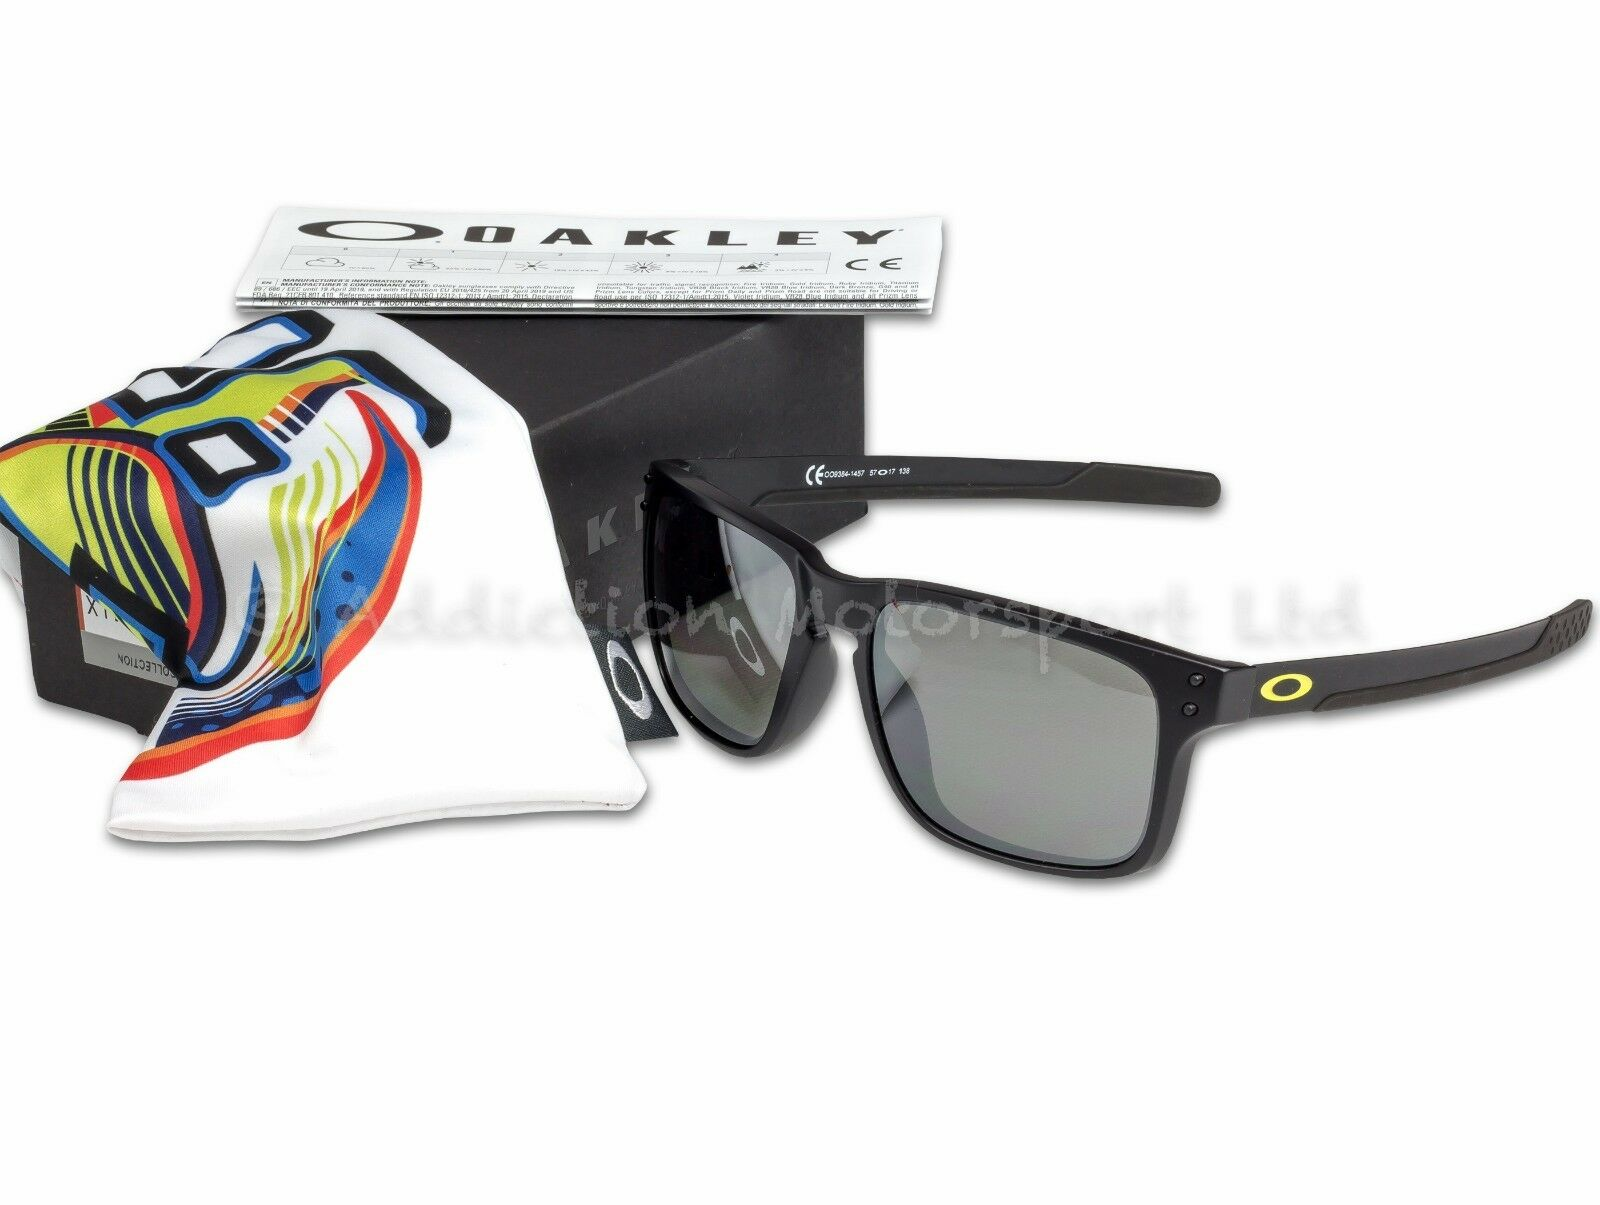 3f9cf02ebc004 All of our Oakley Sunglasses for sale are in our stock, and can be  delivered the very next working day (please choose the right postage and  pay before 2pm).